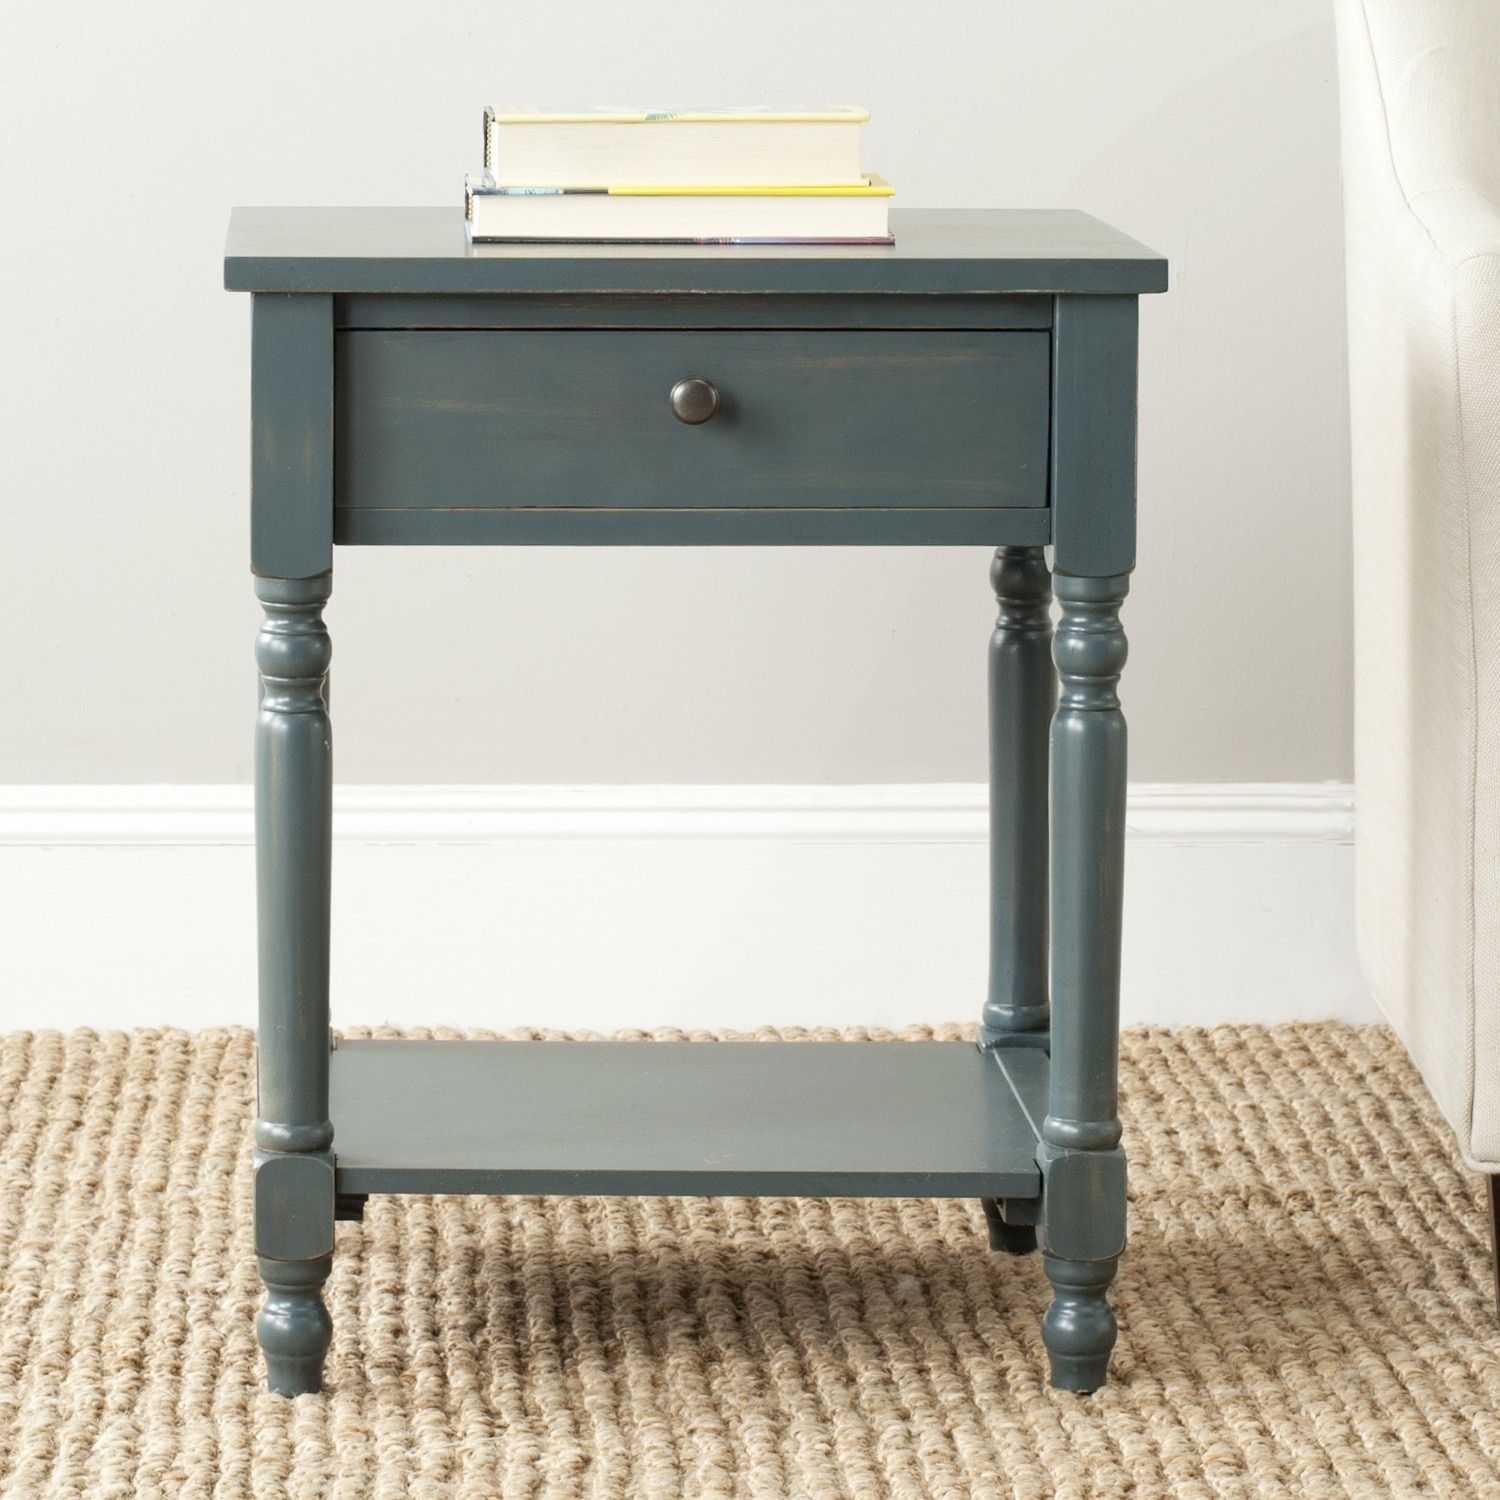 safavieh tami dark teal accent table blue ott coffee chinoiserie lamp wall mounted console diy small end laminated cotton tablecloth unique tables and very thin pair nightstands